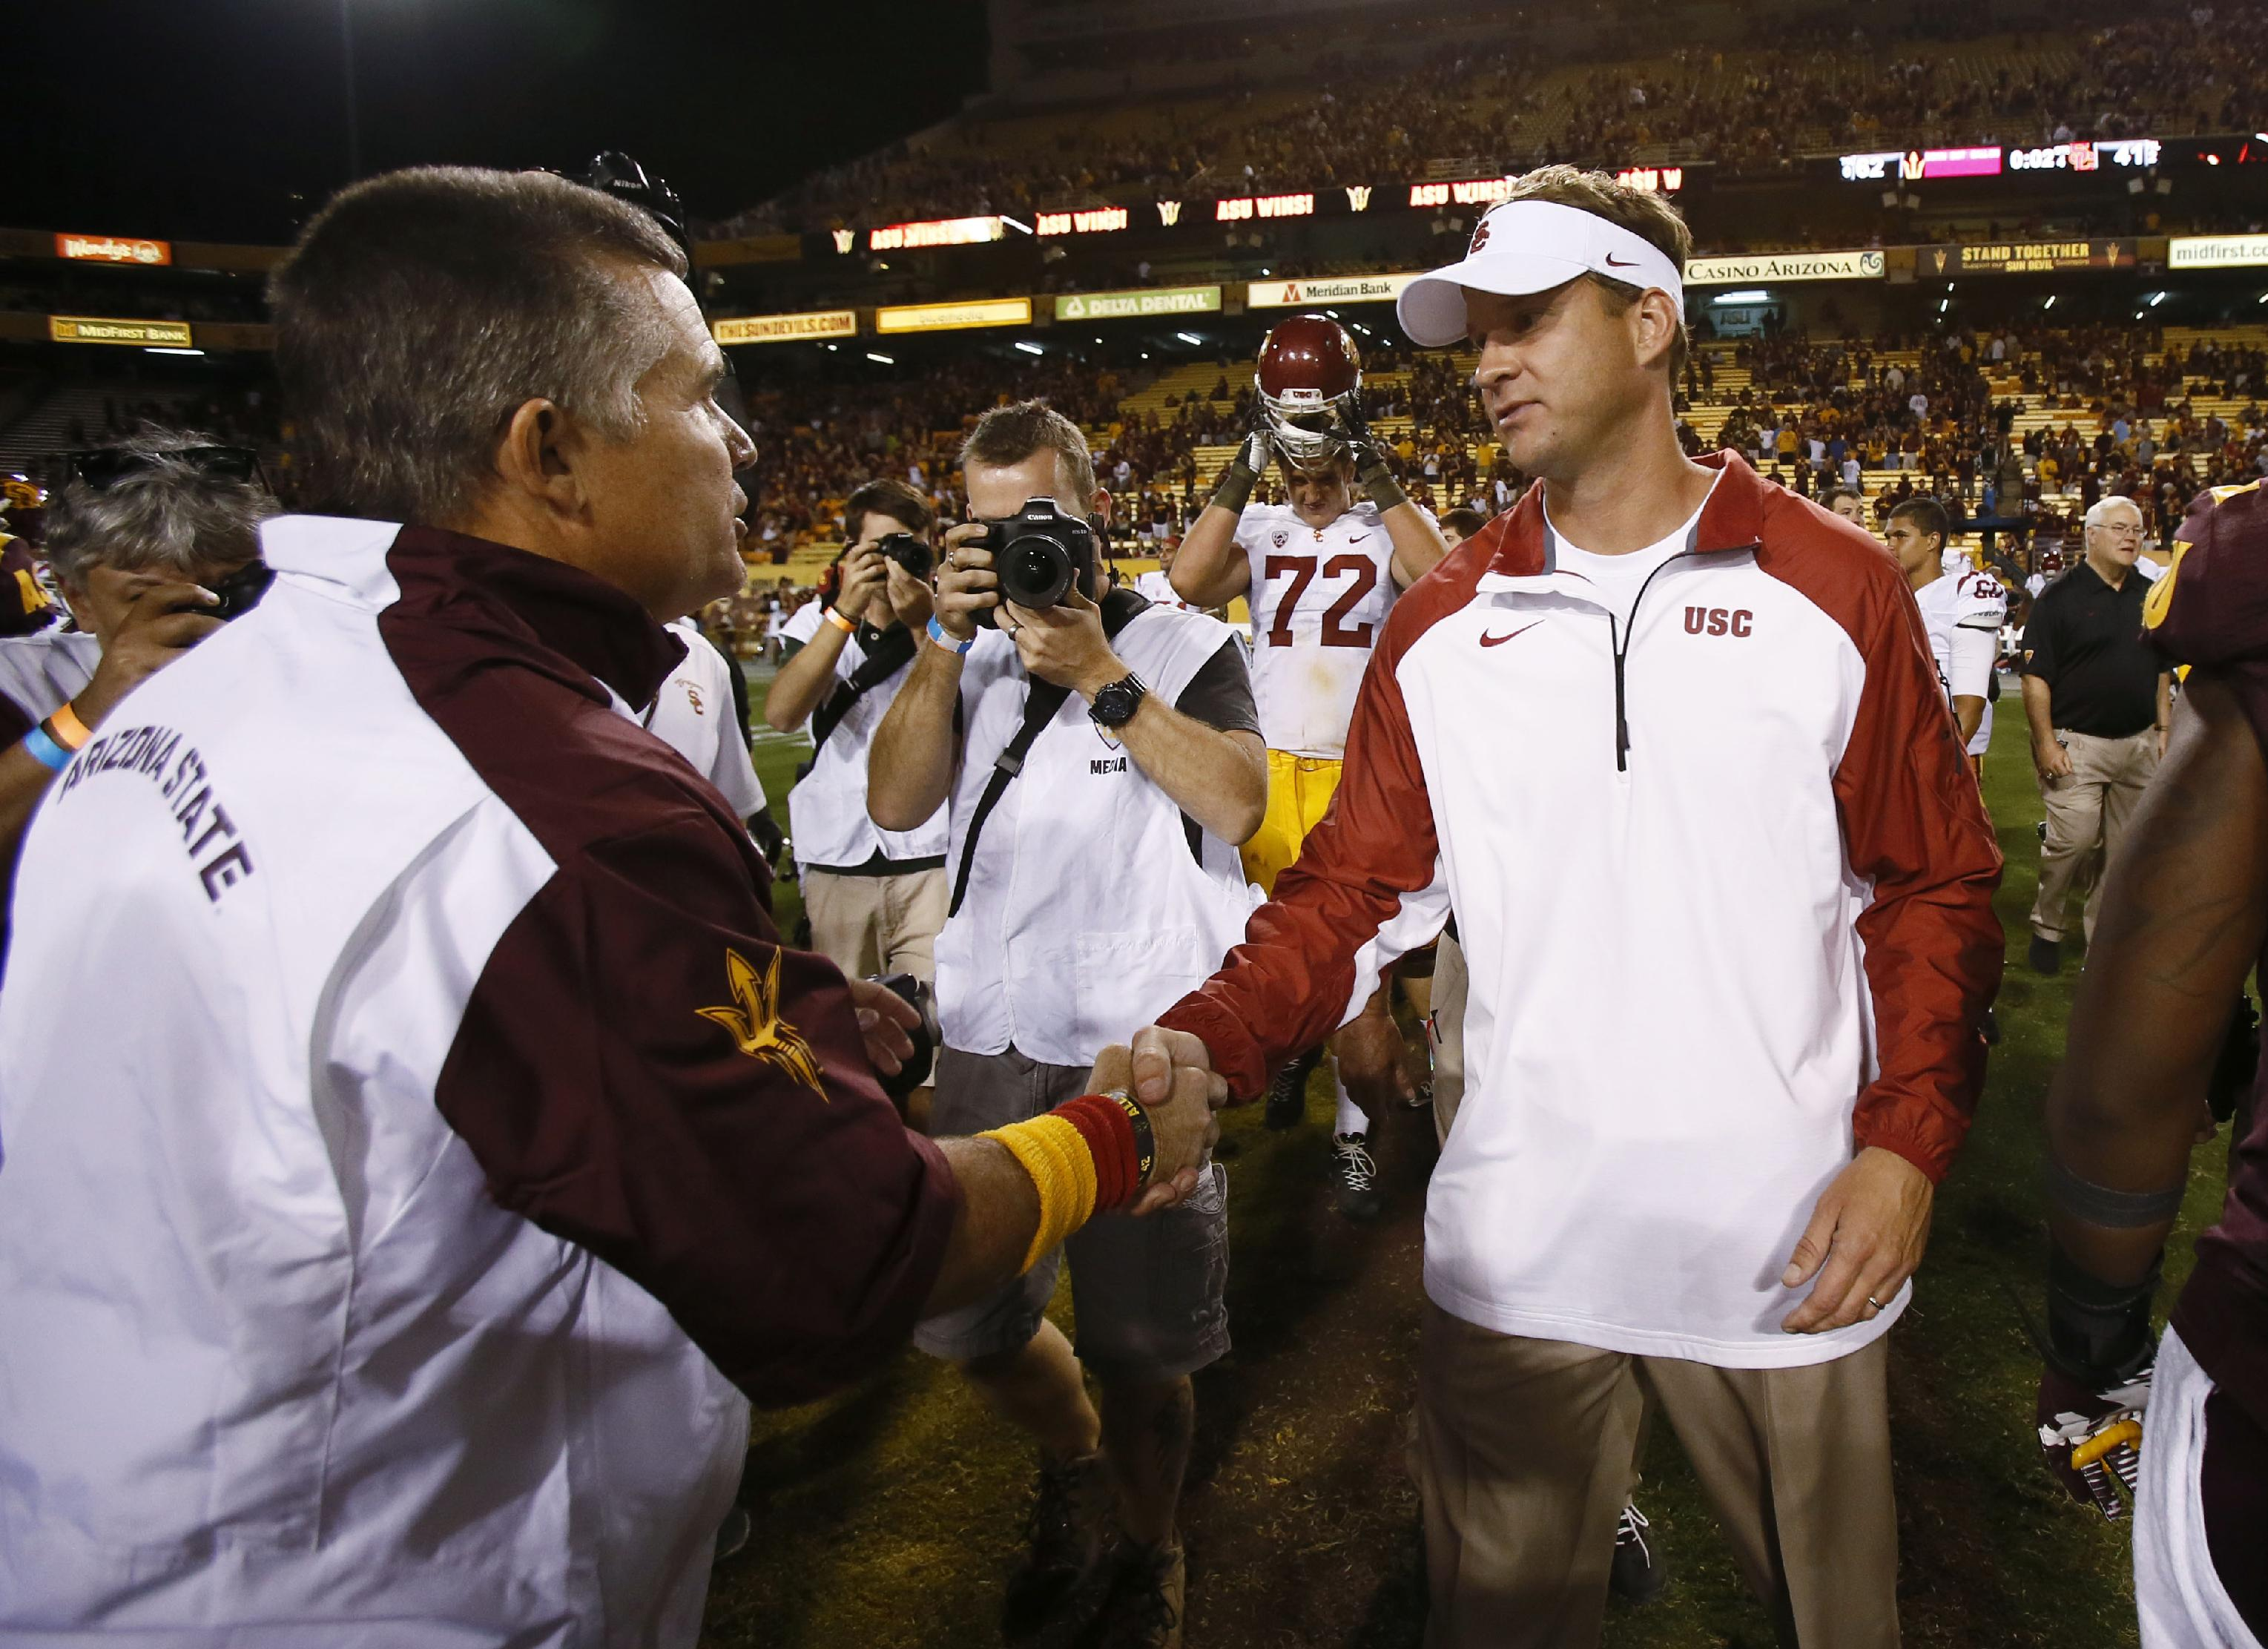 In this Sept. 28, 2013 photo, Arizona State University head coach Todd Graham, left,  shakes hands with USC head coach Lane Kiffin after ASU defeated USC 62-41 at Sun Devil Stadium in Tempe, Ariz. USC fired Kiffin early Sunday morning, not long after the team lost 62-41 at Arizona State